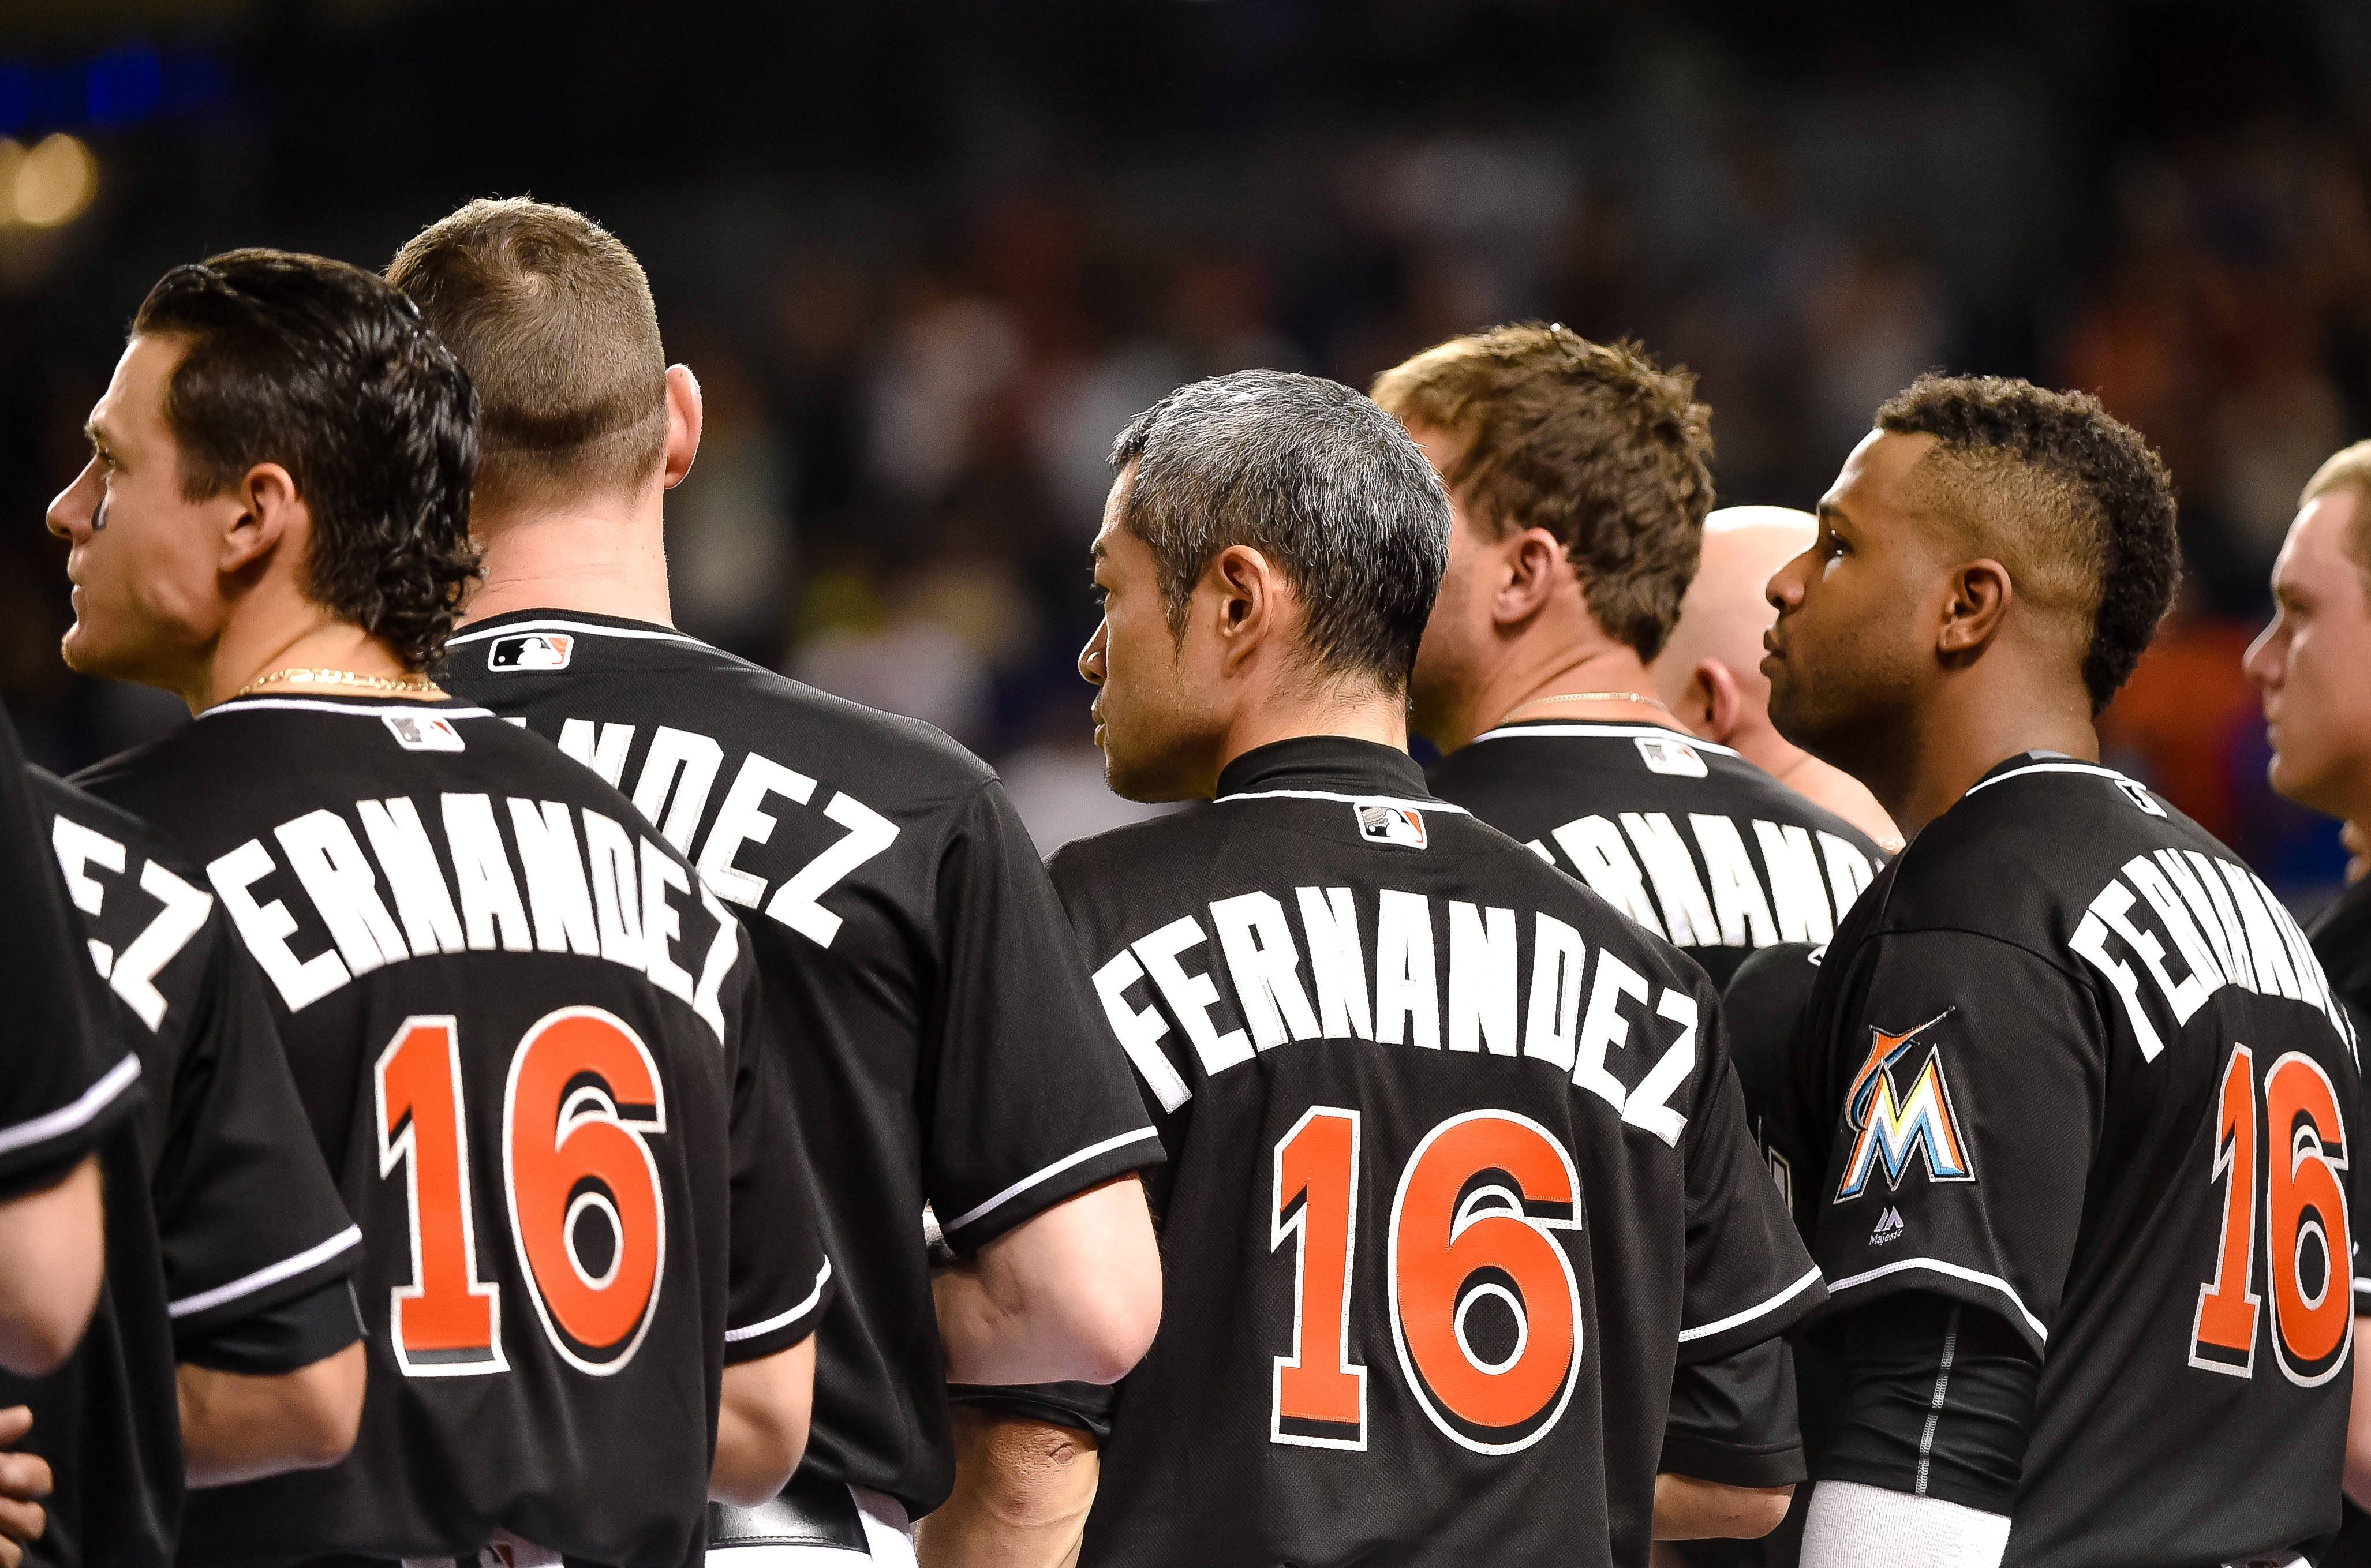 Sep 26, 2016; Miami, FL, USA; Miami Marlins players wear number 16 on their jerseys in honer of Marlins starting pitcher Jose Fernandez who passed away from a boating accident over the weekend prior to their game against the New York Mets at Marlins Park. Mandatory Credit: Steve Mitchell-USA TODAY Sports